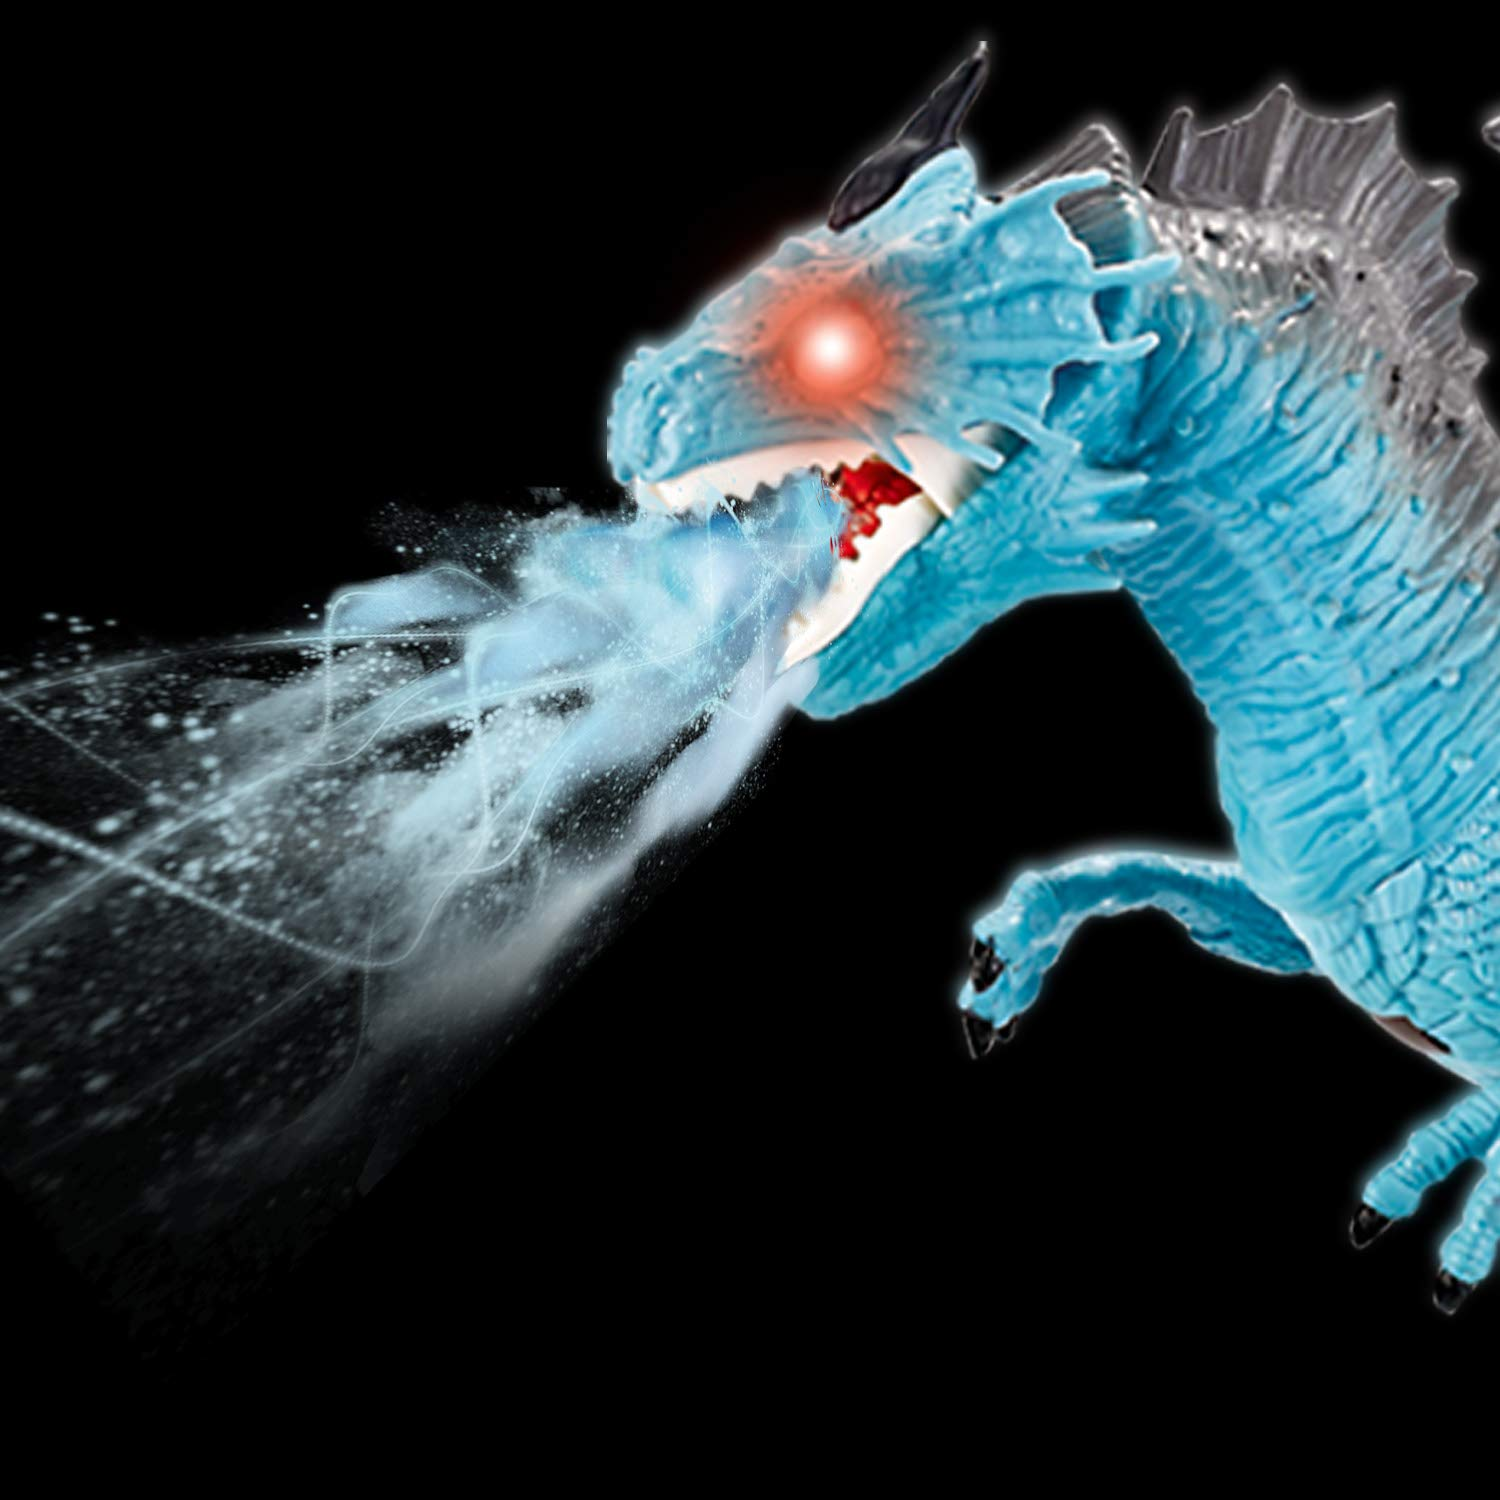 Liberty Imports Dino Planet Remote Control RC Walking Dinosaur Toy with Breathing Smoke, Shaking Head, Light Up Eyes and Sounds (Ice Dragon (with Smoke)) by Liberty Imports (Image #3)